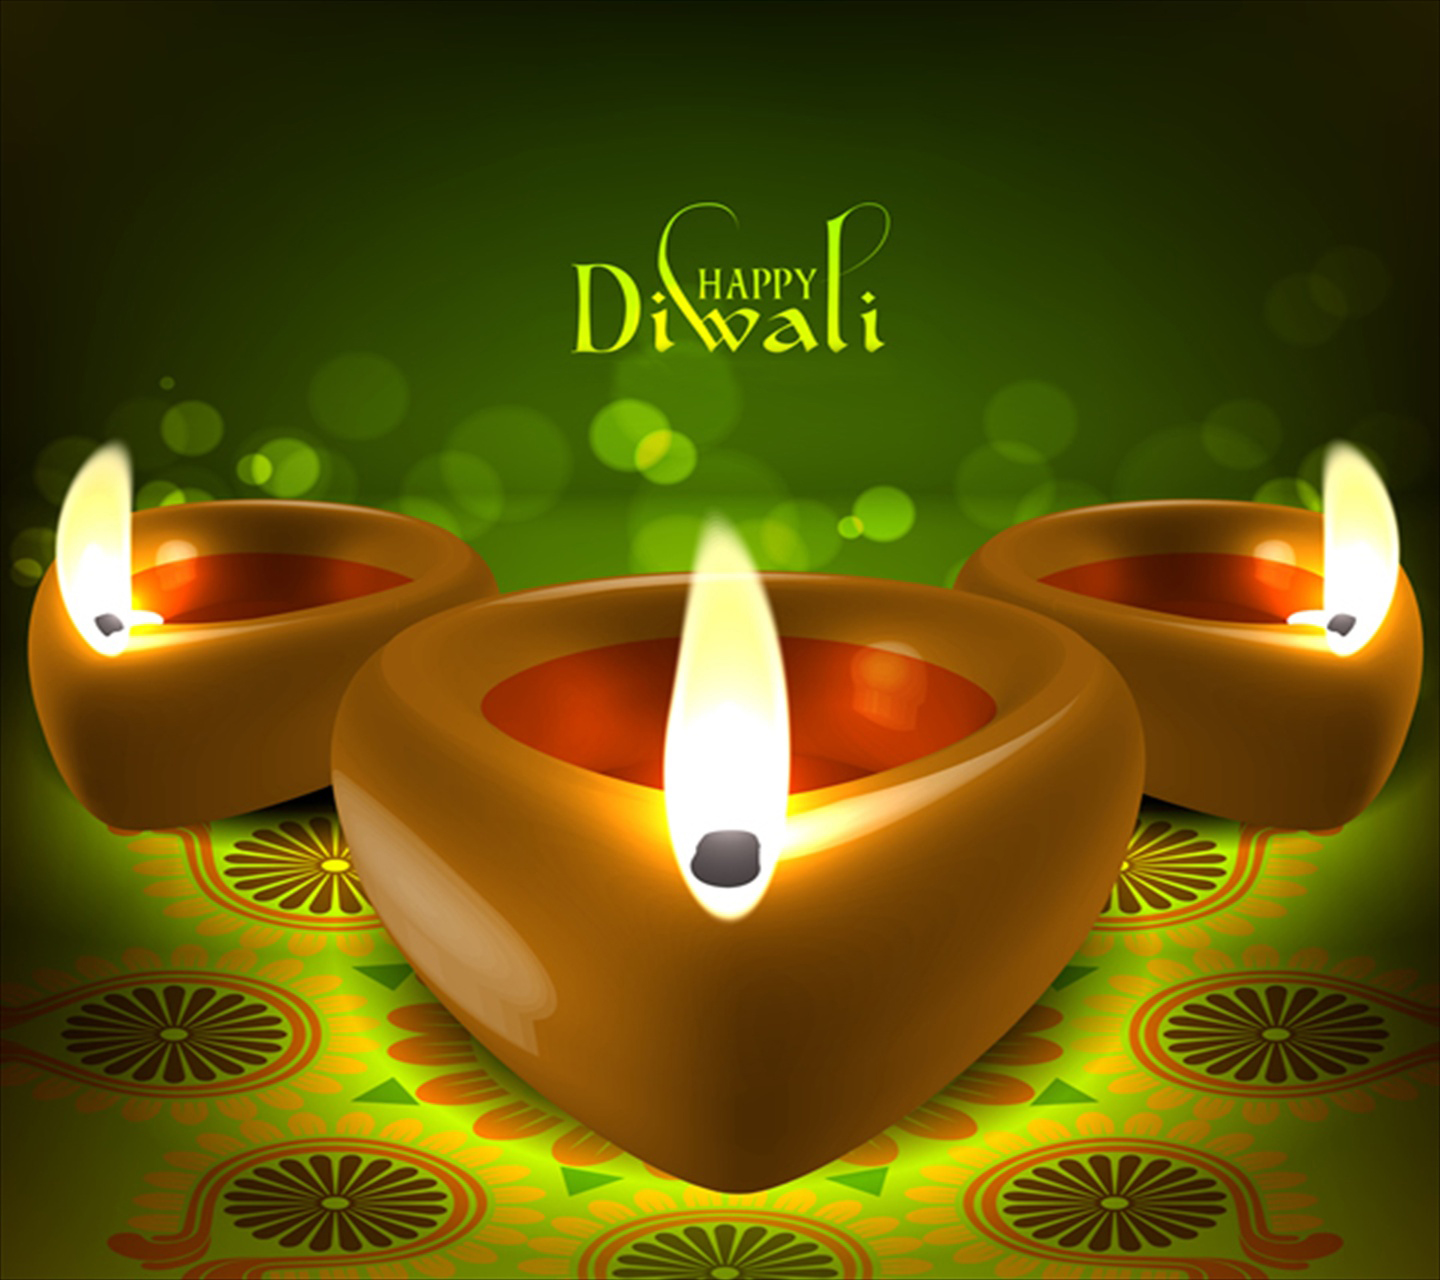 Wallpaper download diwali - Happy Diwali Wallpapers For Desktop